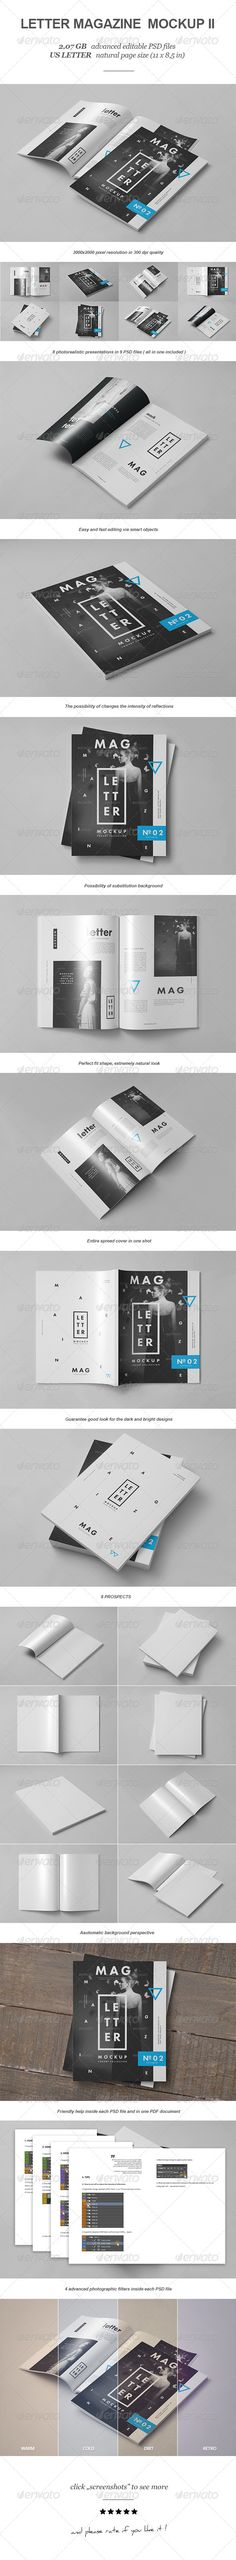 Letter Magazine / Brochure Mock-up #magazinemockup #brochuremockup #journalmockup Download: http://graphicriver.net/item/letter-magazine-brochure-mockup-ii/8234615?ref=ksioks